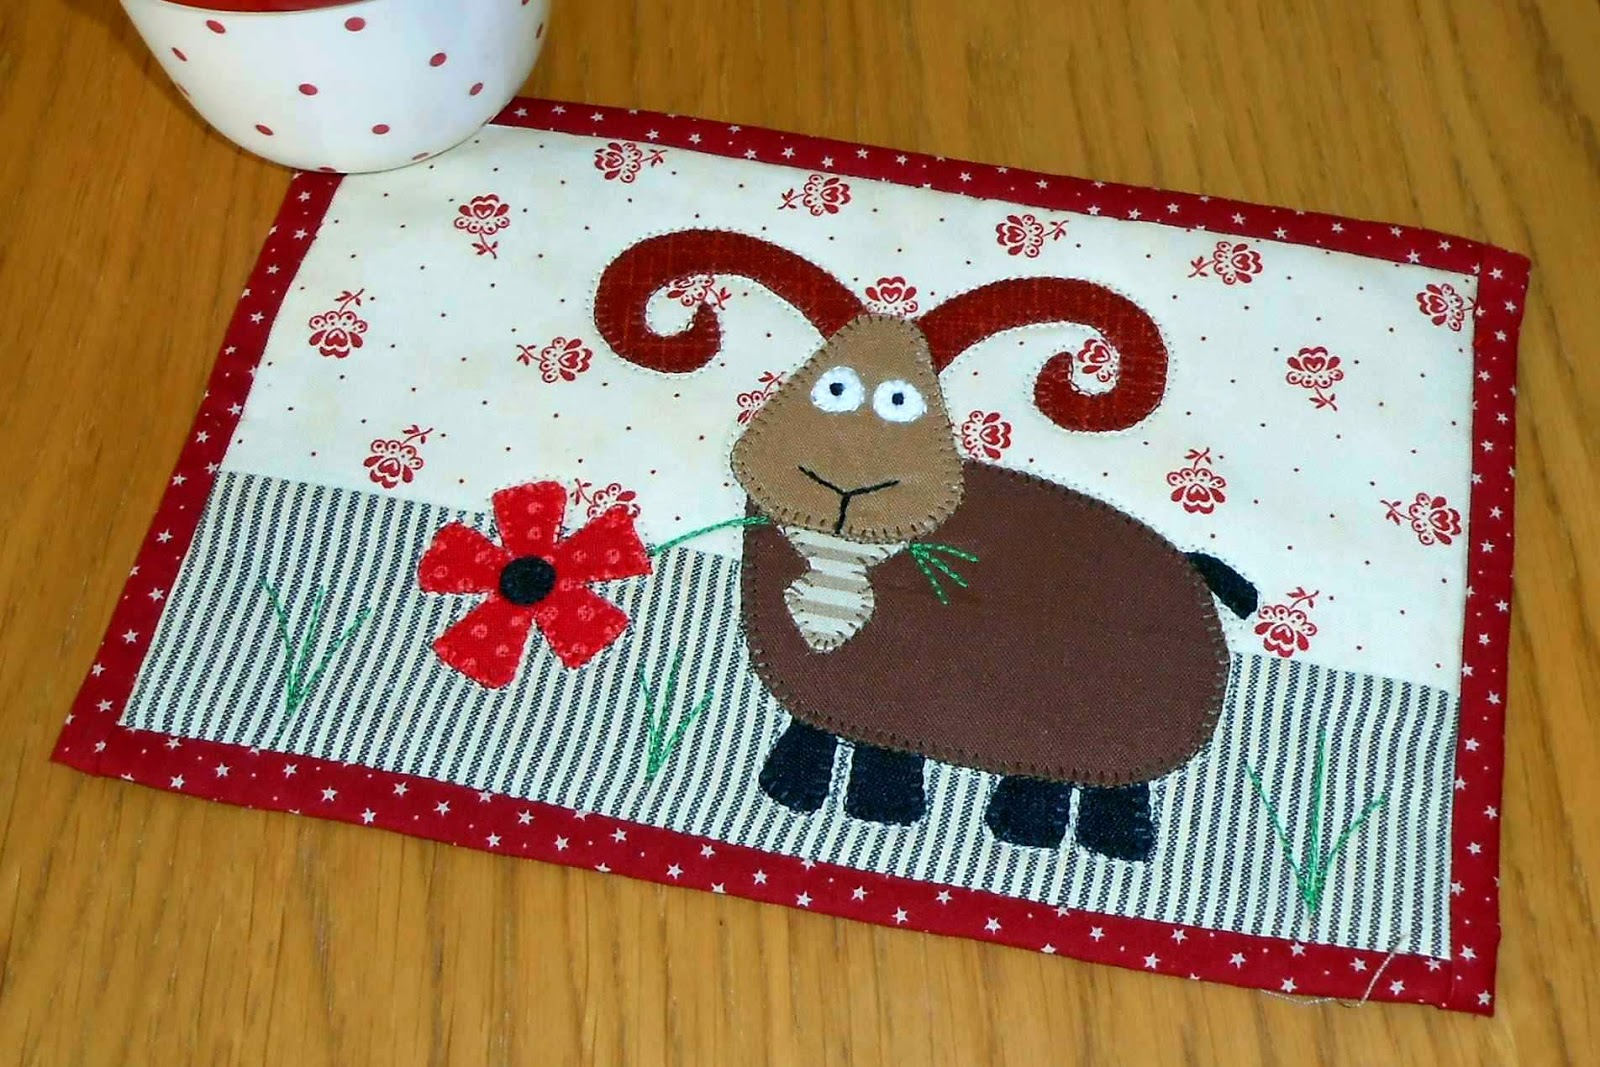 http://www.craftsy.com/pattern/quilting/home-decor/billy-goat-mug-rug/89545